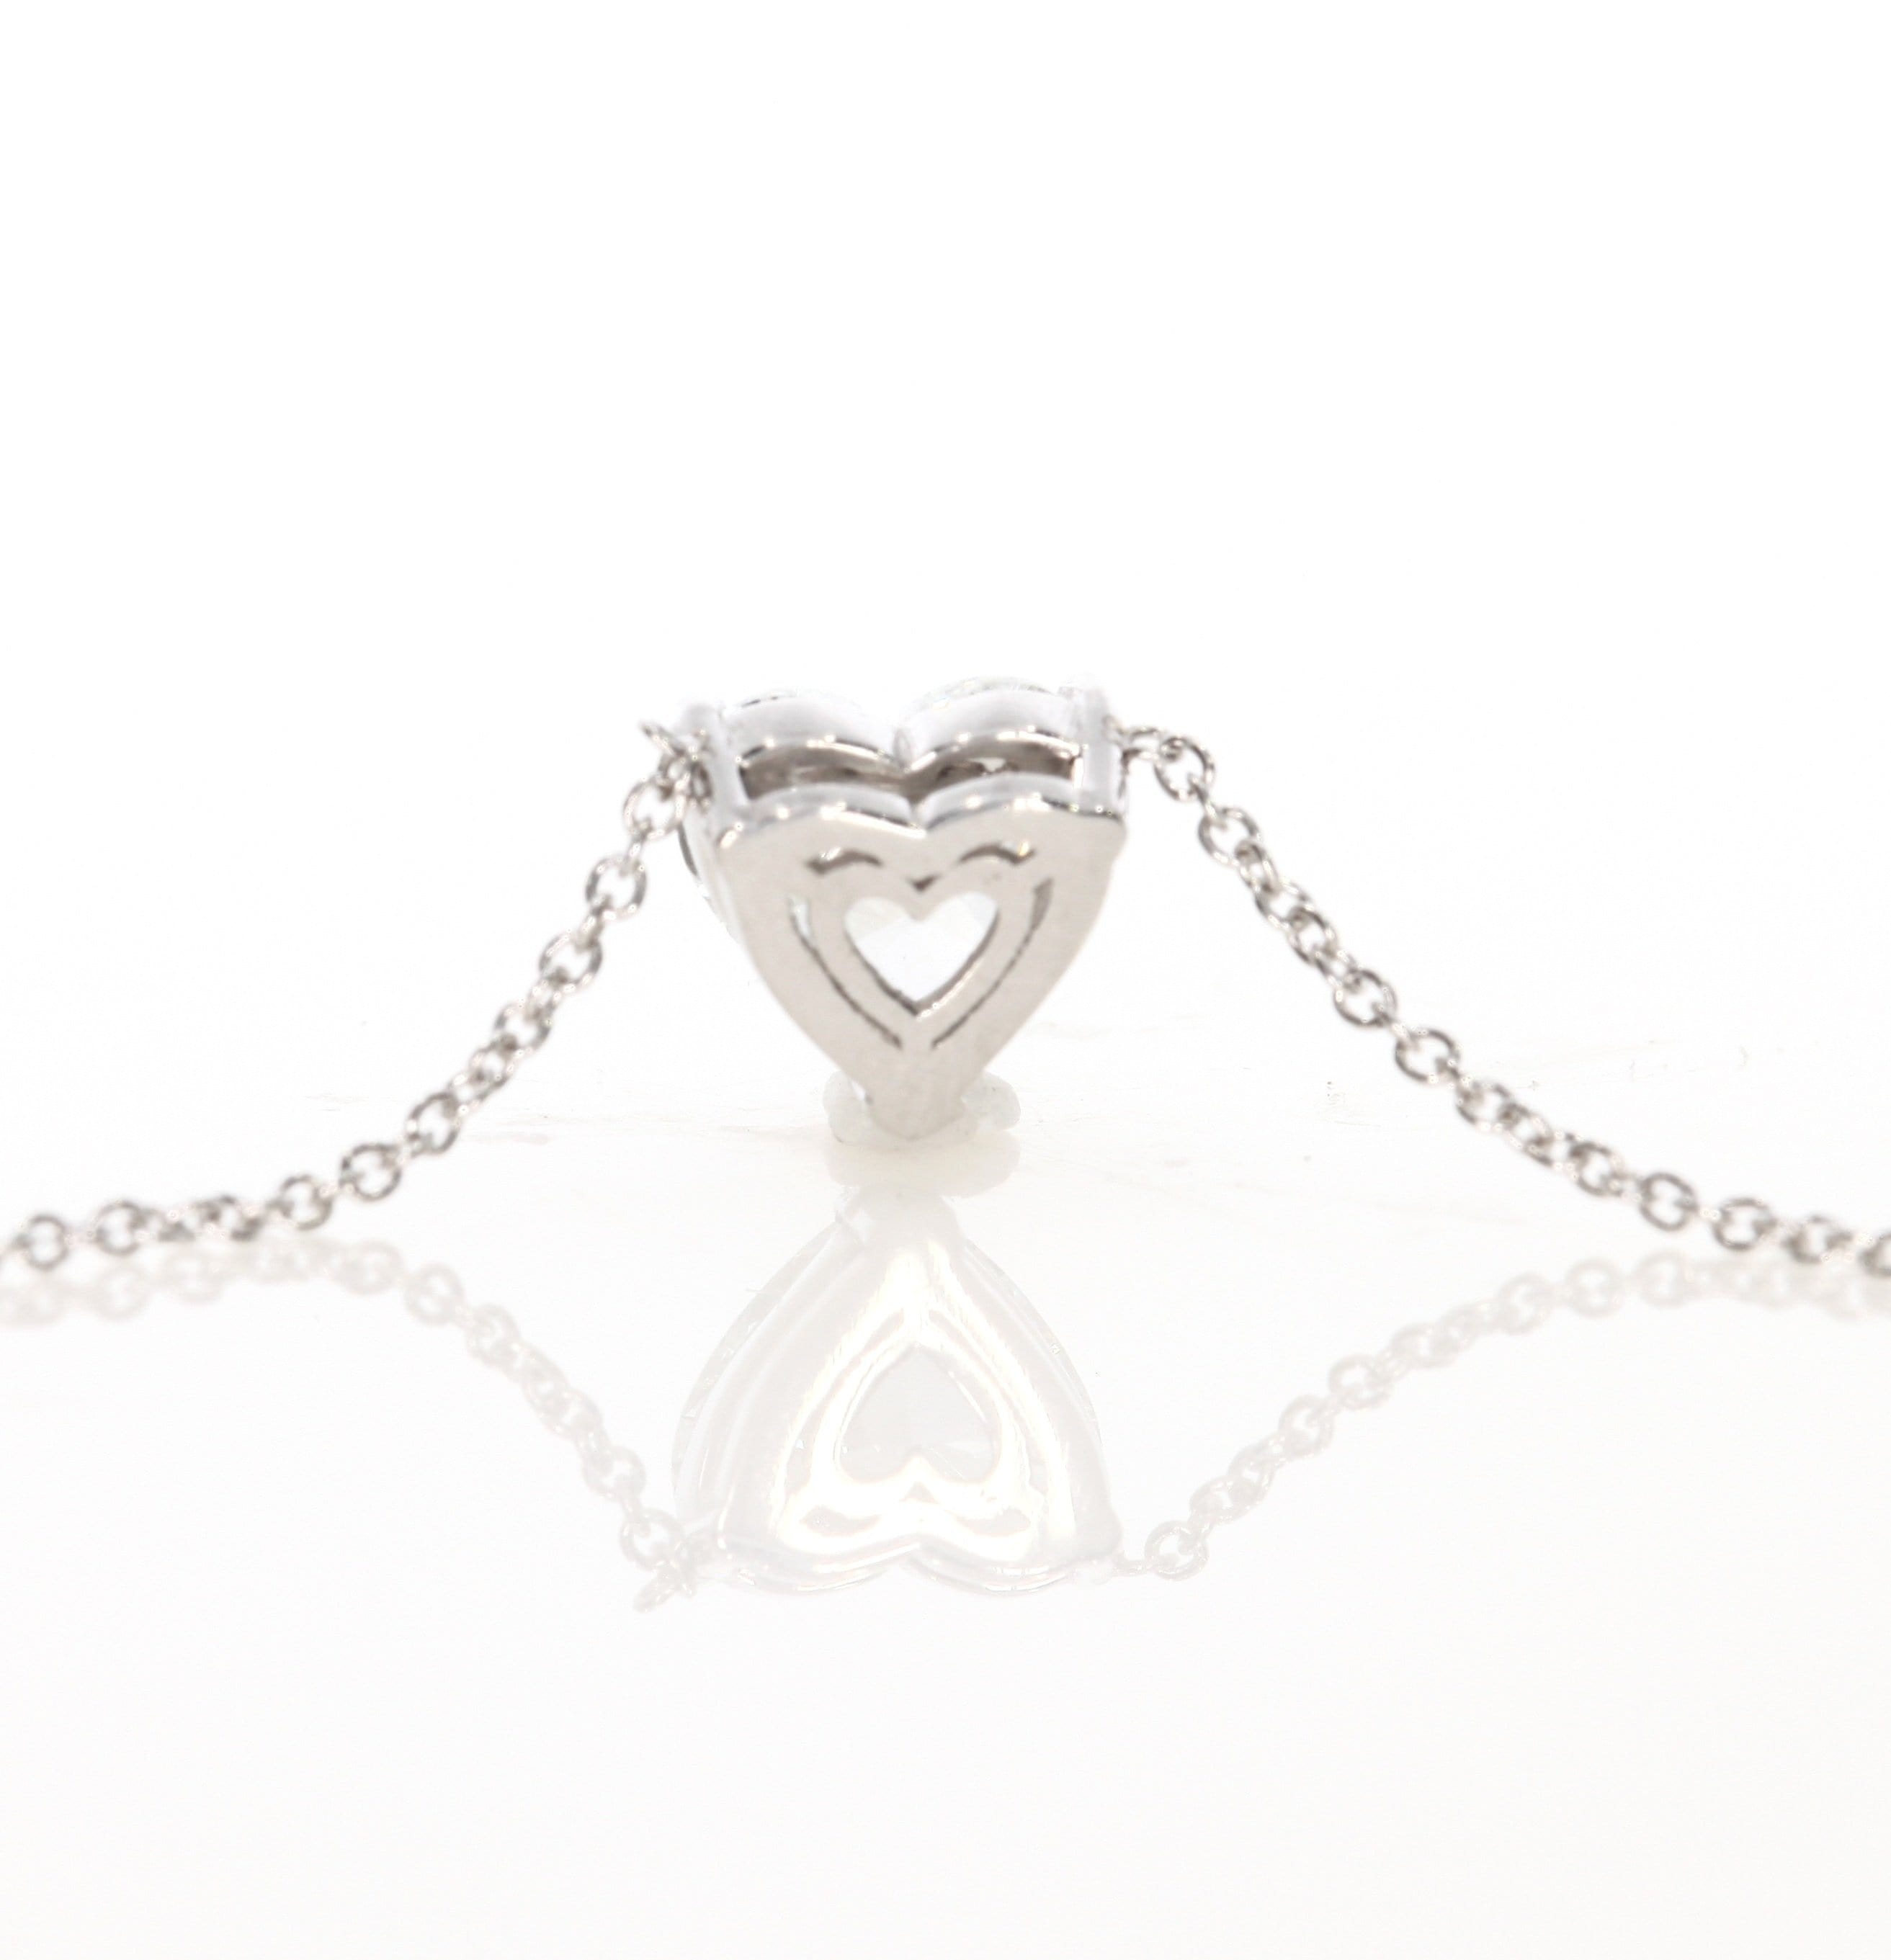 1.08 ct Heart Shaped Diamond Pendant Necklace